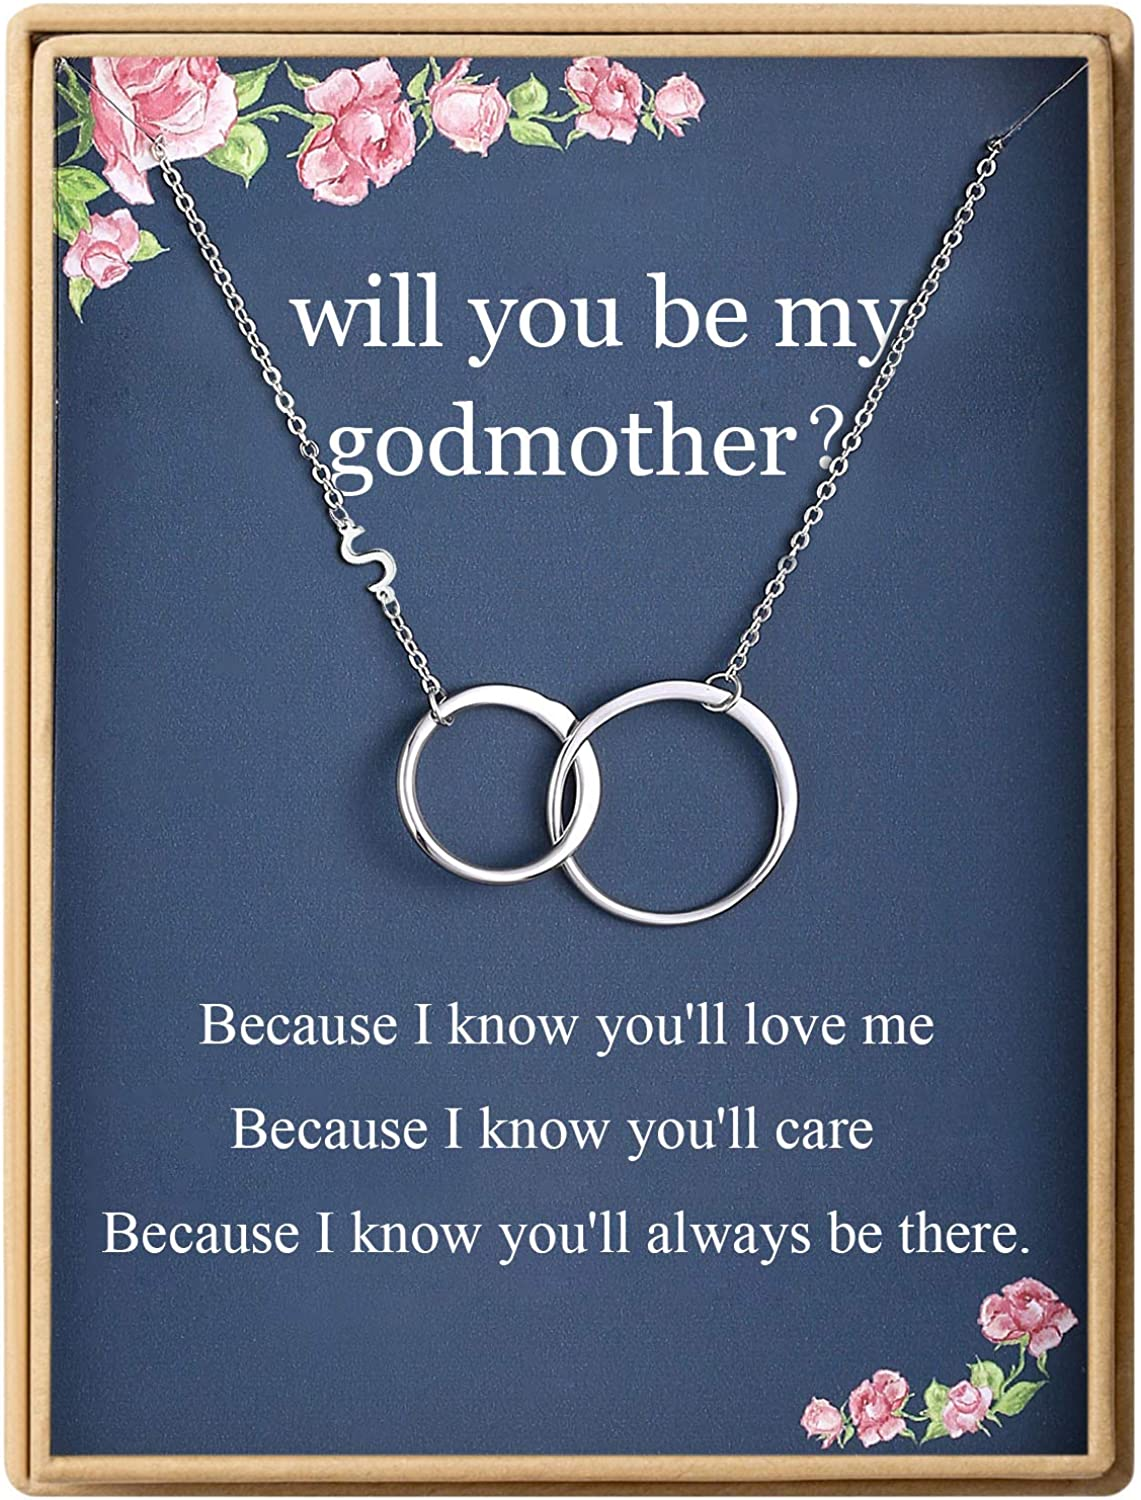 Godmother Necklace Initial Two Double Interlocking Circ Albuquerque Mall Infinity Colorado Springs Mall